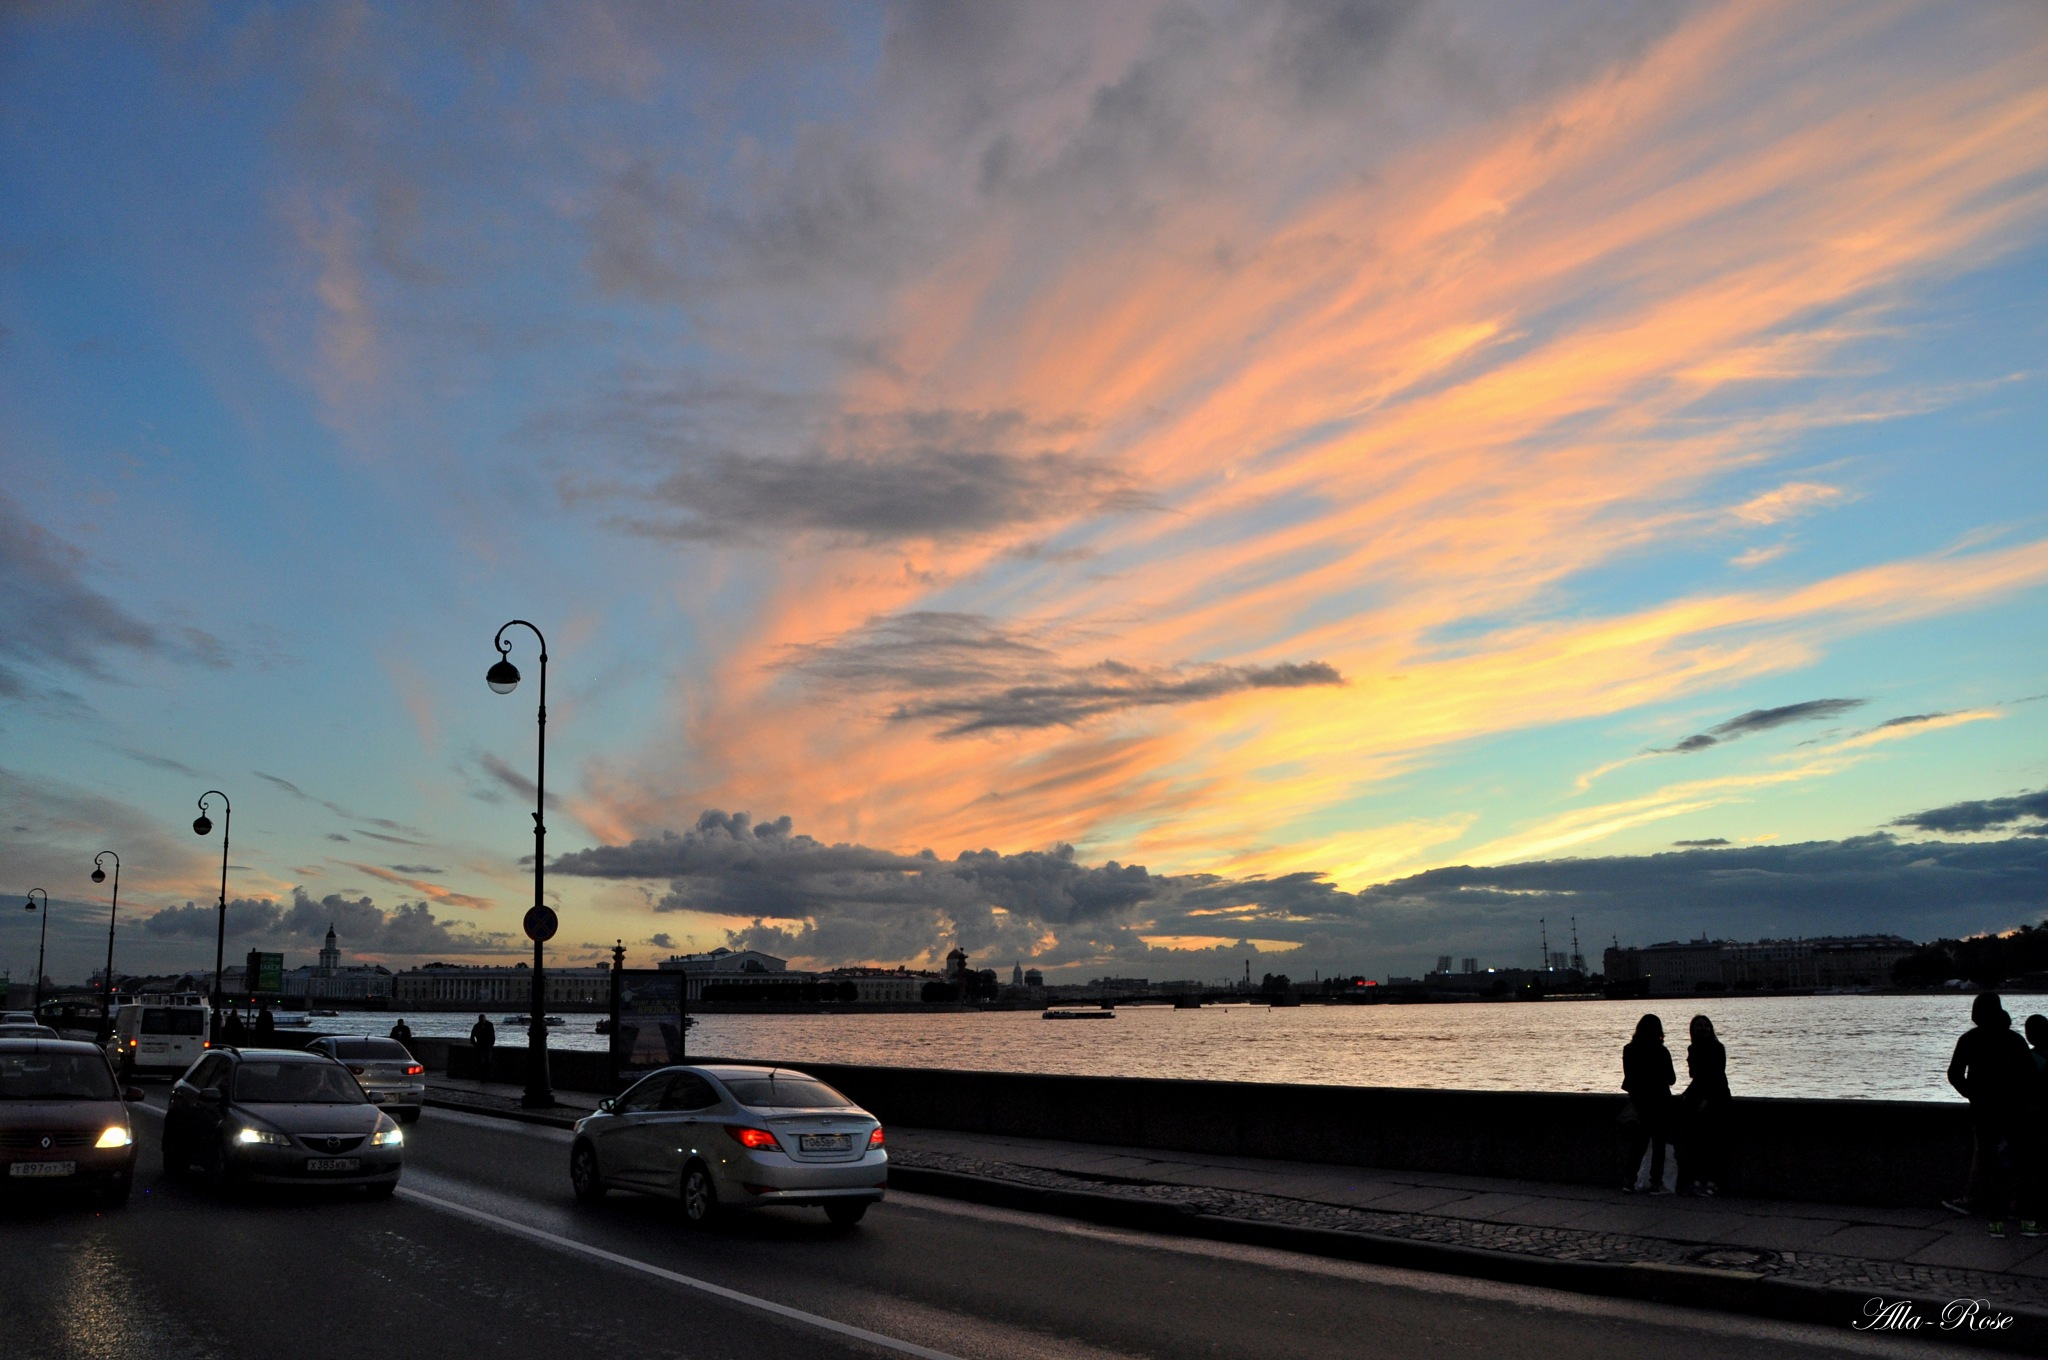 Sunset sky over St. Petersburg in August by Alla-Rose